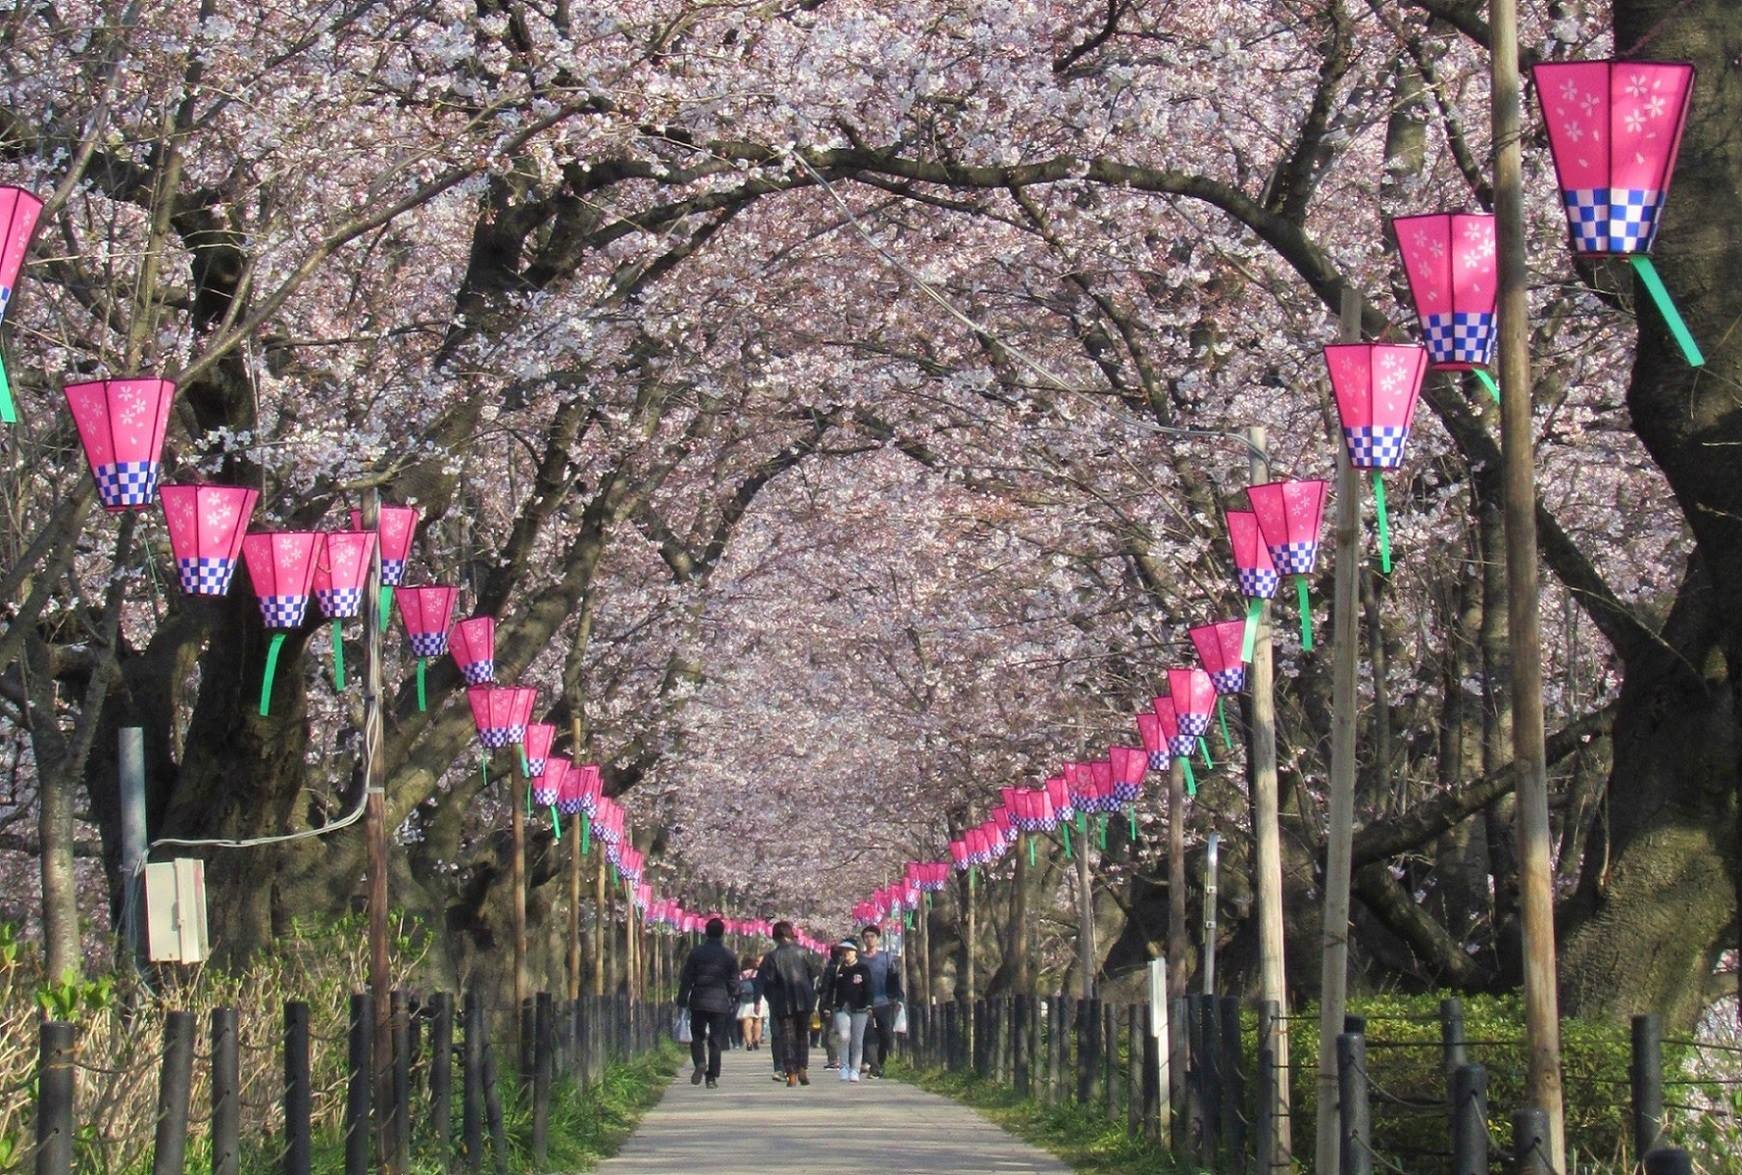 Gongendo Park Cherry Tree Archway/Tunnel, Satte City, Japan